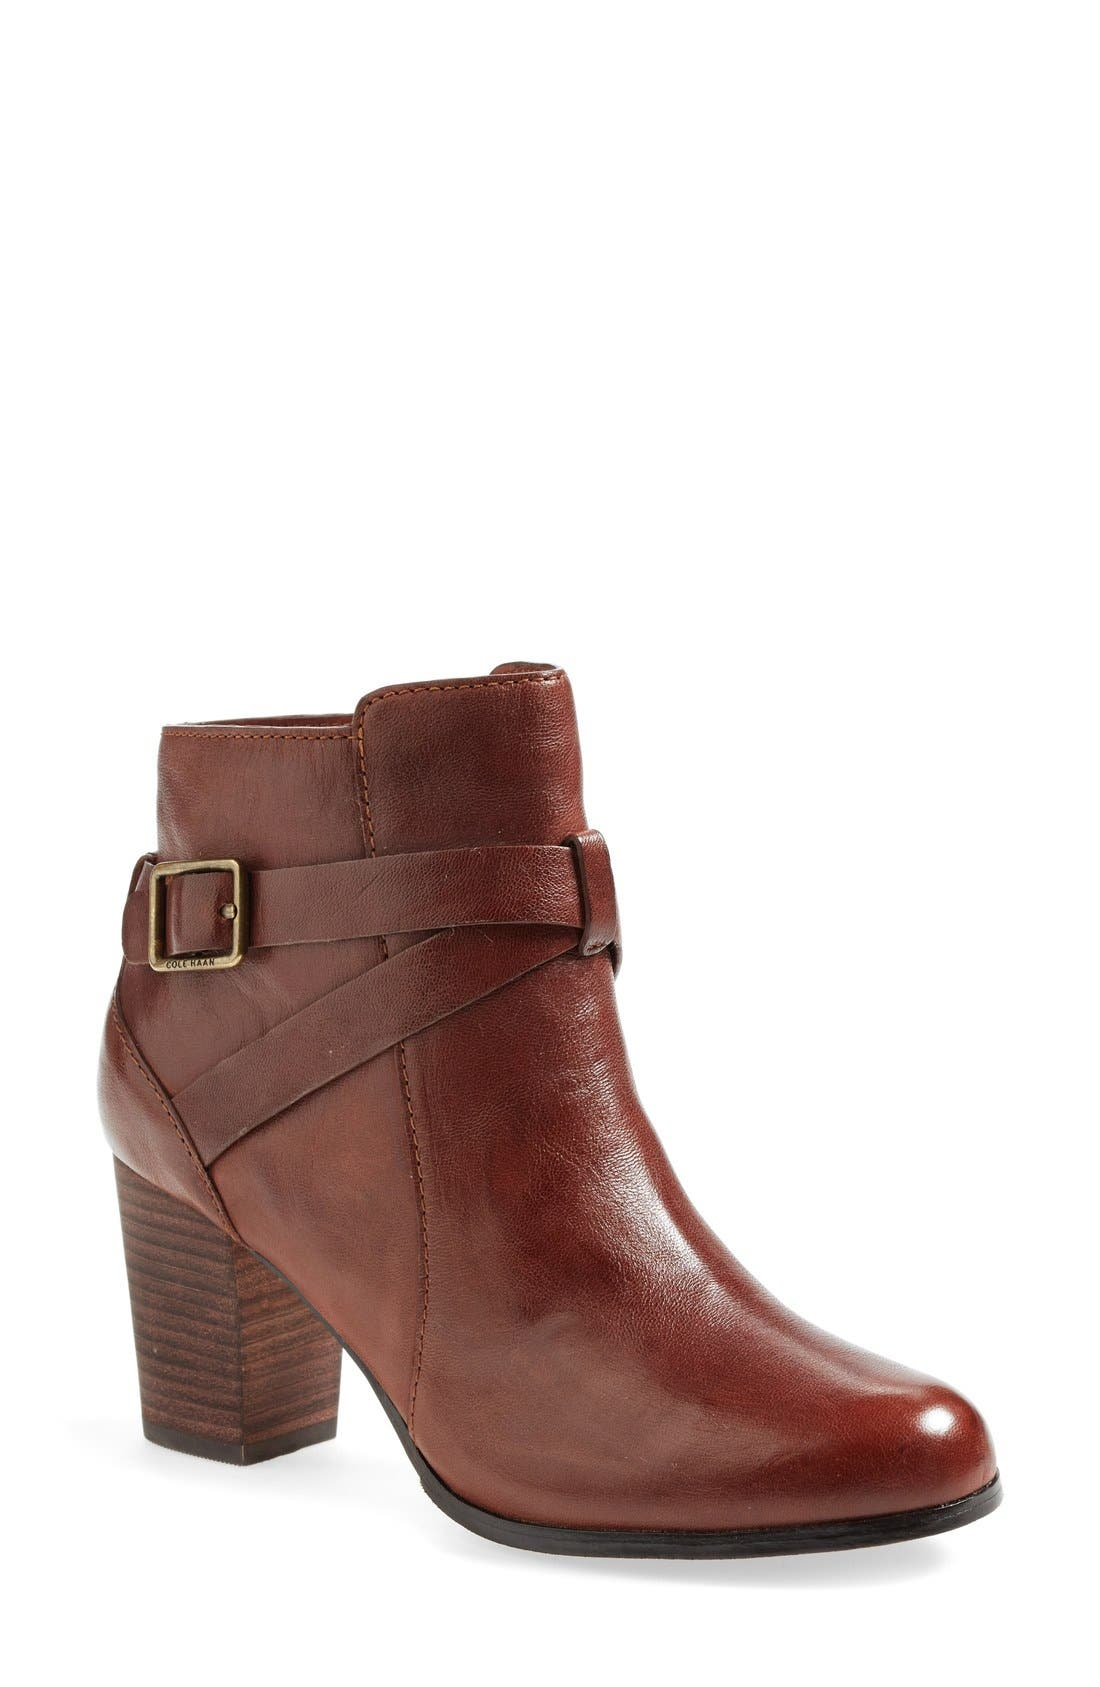 Alternate Image 1 Selected - Cole Haan 'Cassidy' Wraparound Strap Boot (Women)